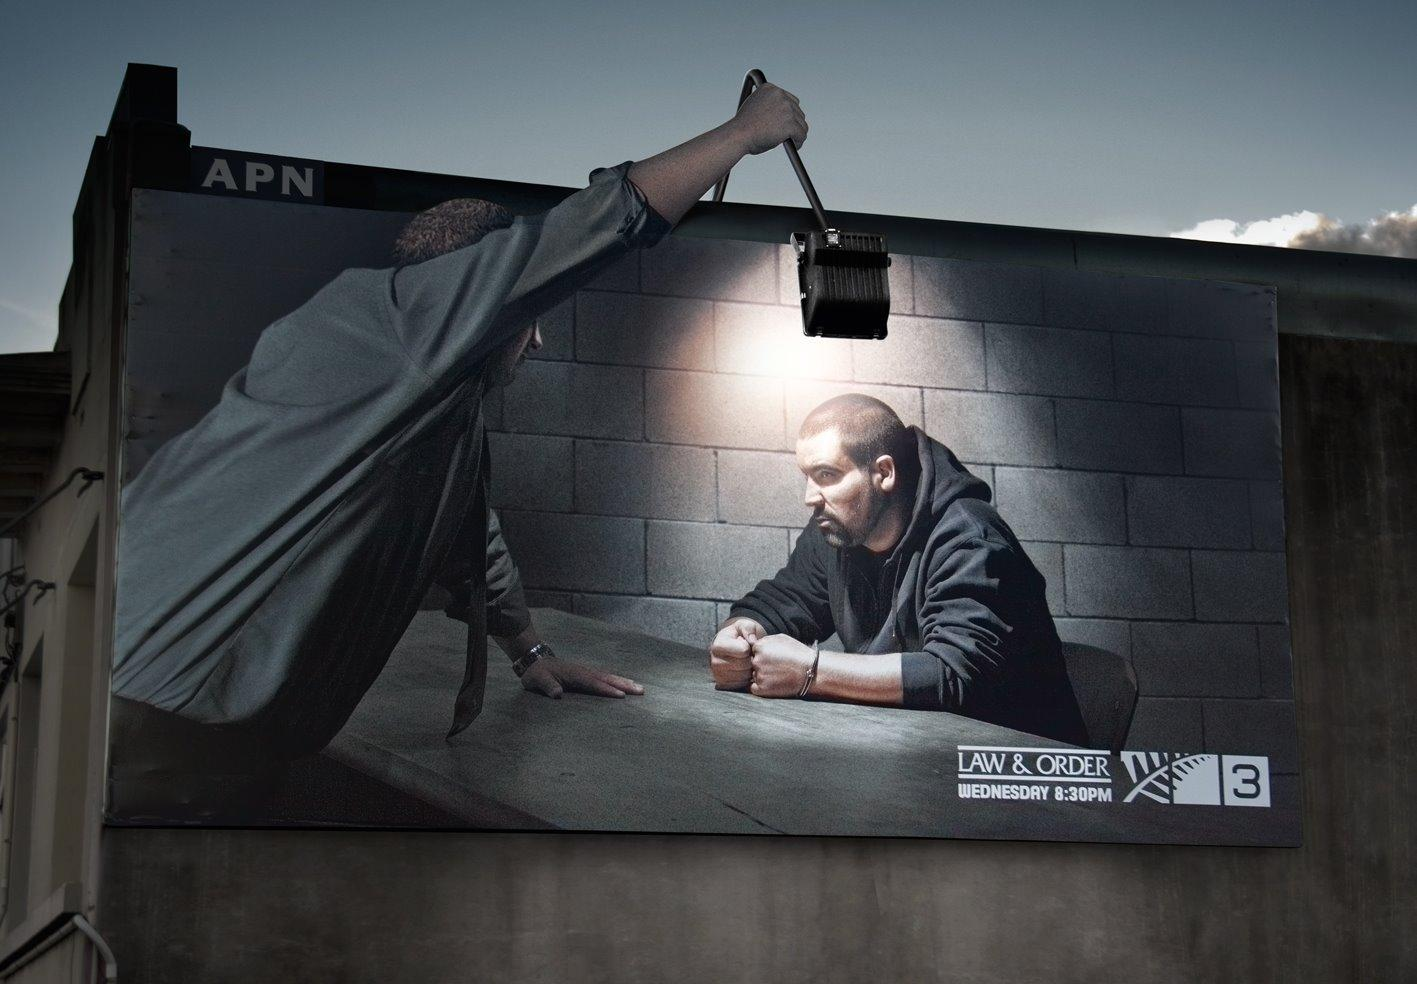 TV3 Outdoor Ad -  Law & Order outdoor lamp